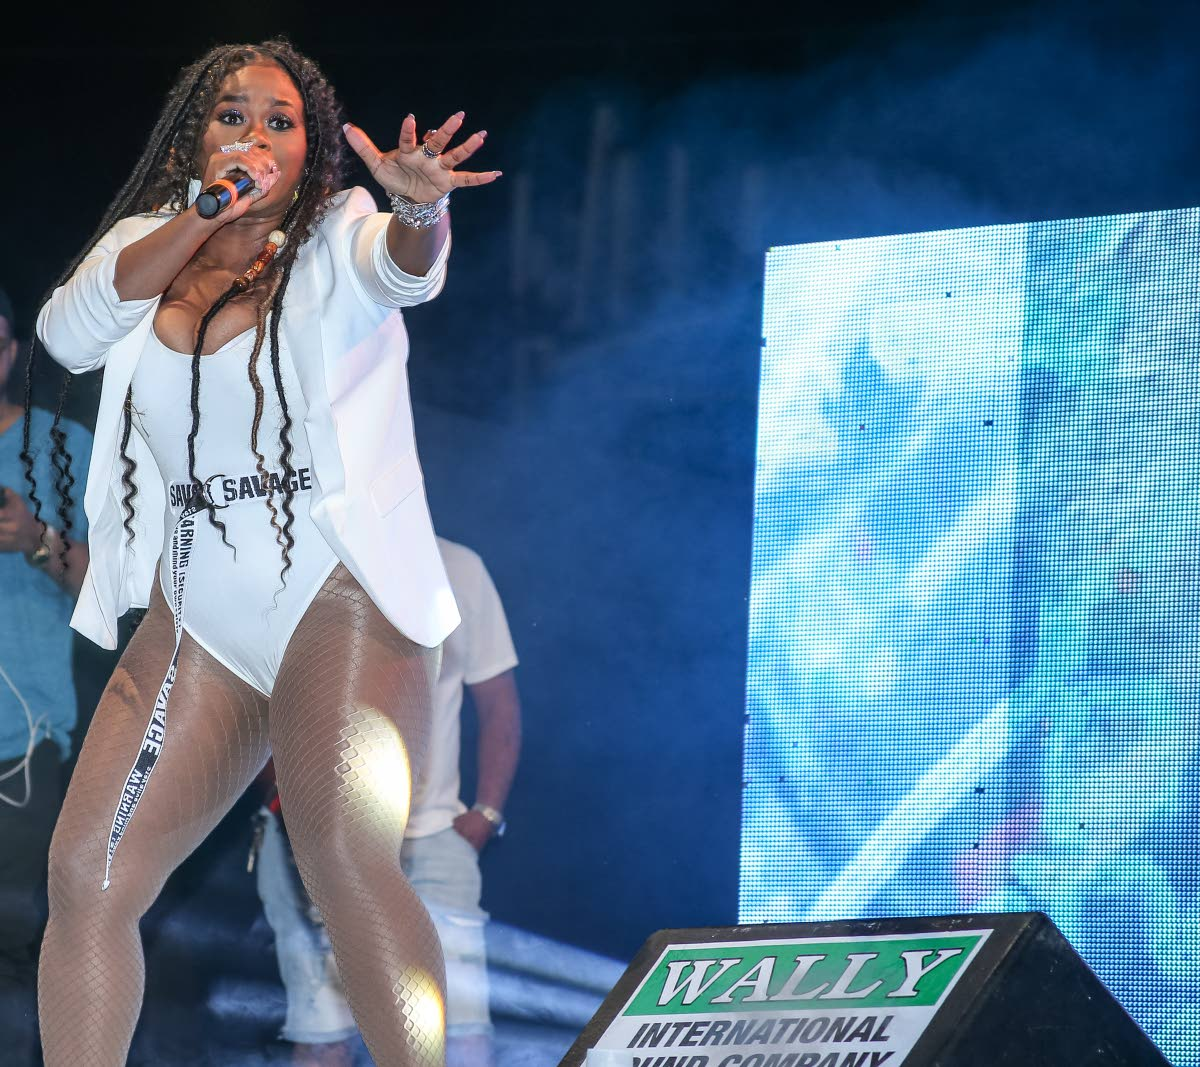 Nadia Batson during her performance at Tribe Ice at The Paddock, Queen's Park Savannah, Port of Spain on Saturday.